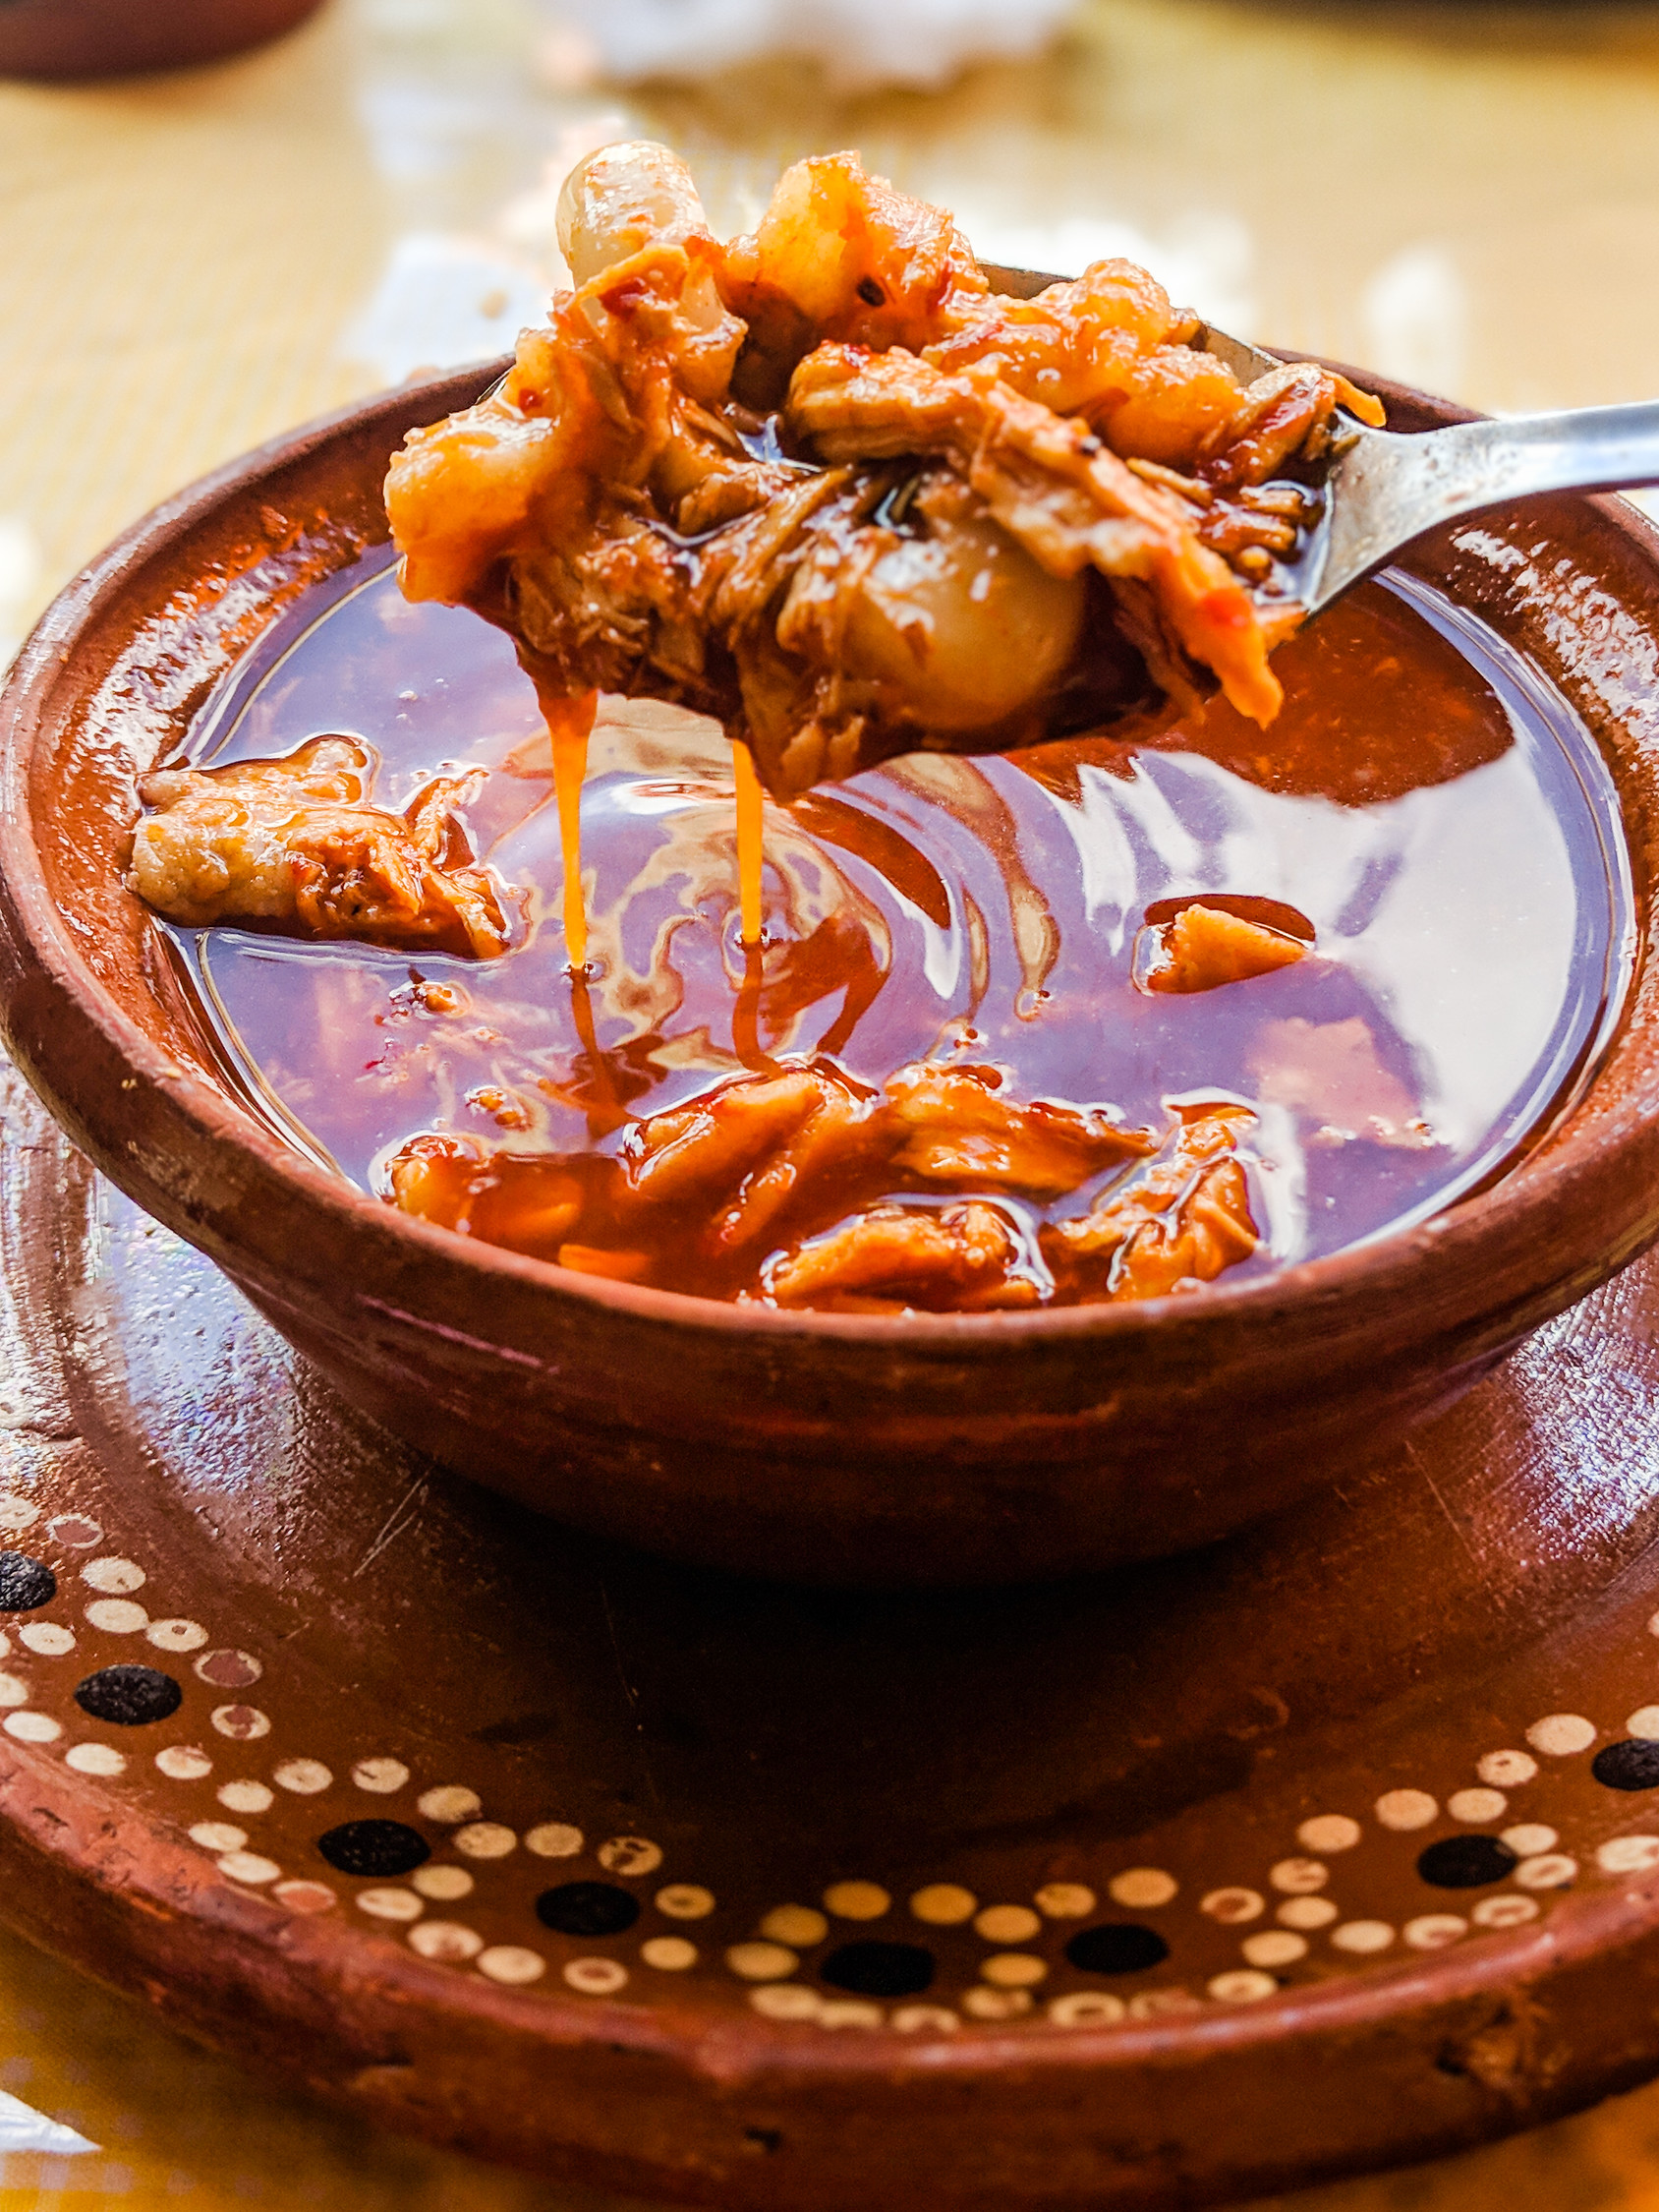 Pozole is a traditional Mexican food eaten around the country.